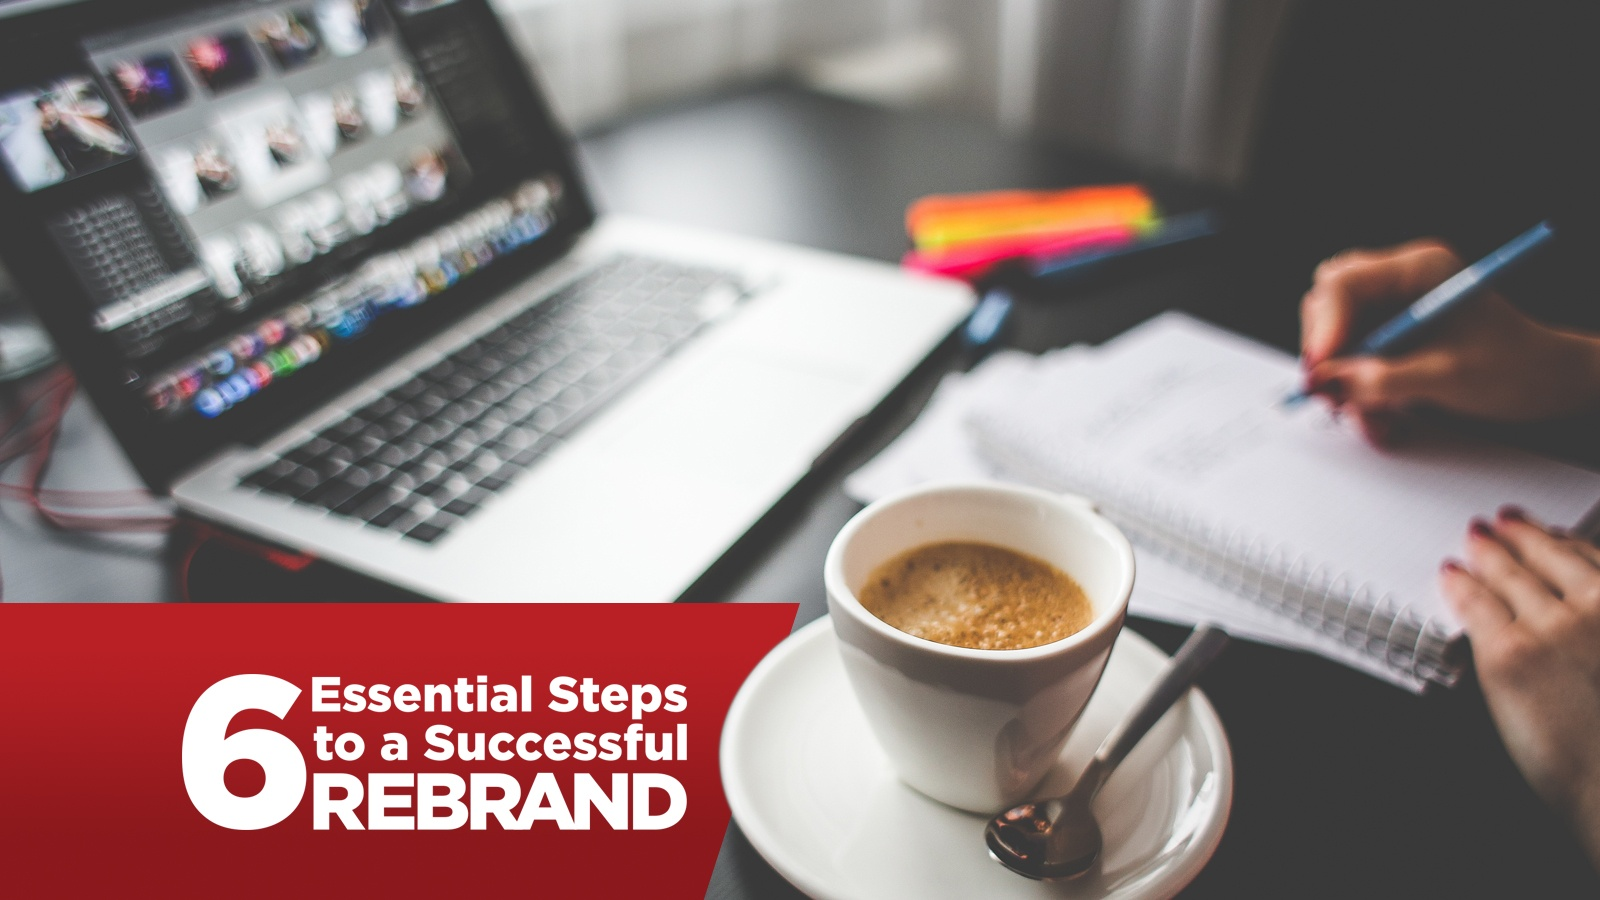 XK3-Blog-6-Essential-Steps-to-a-Successful-Rebrand-option-1